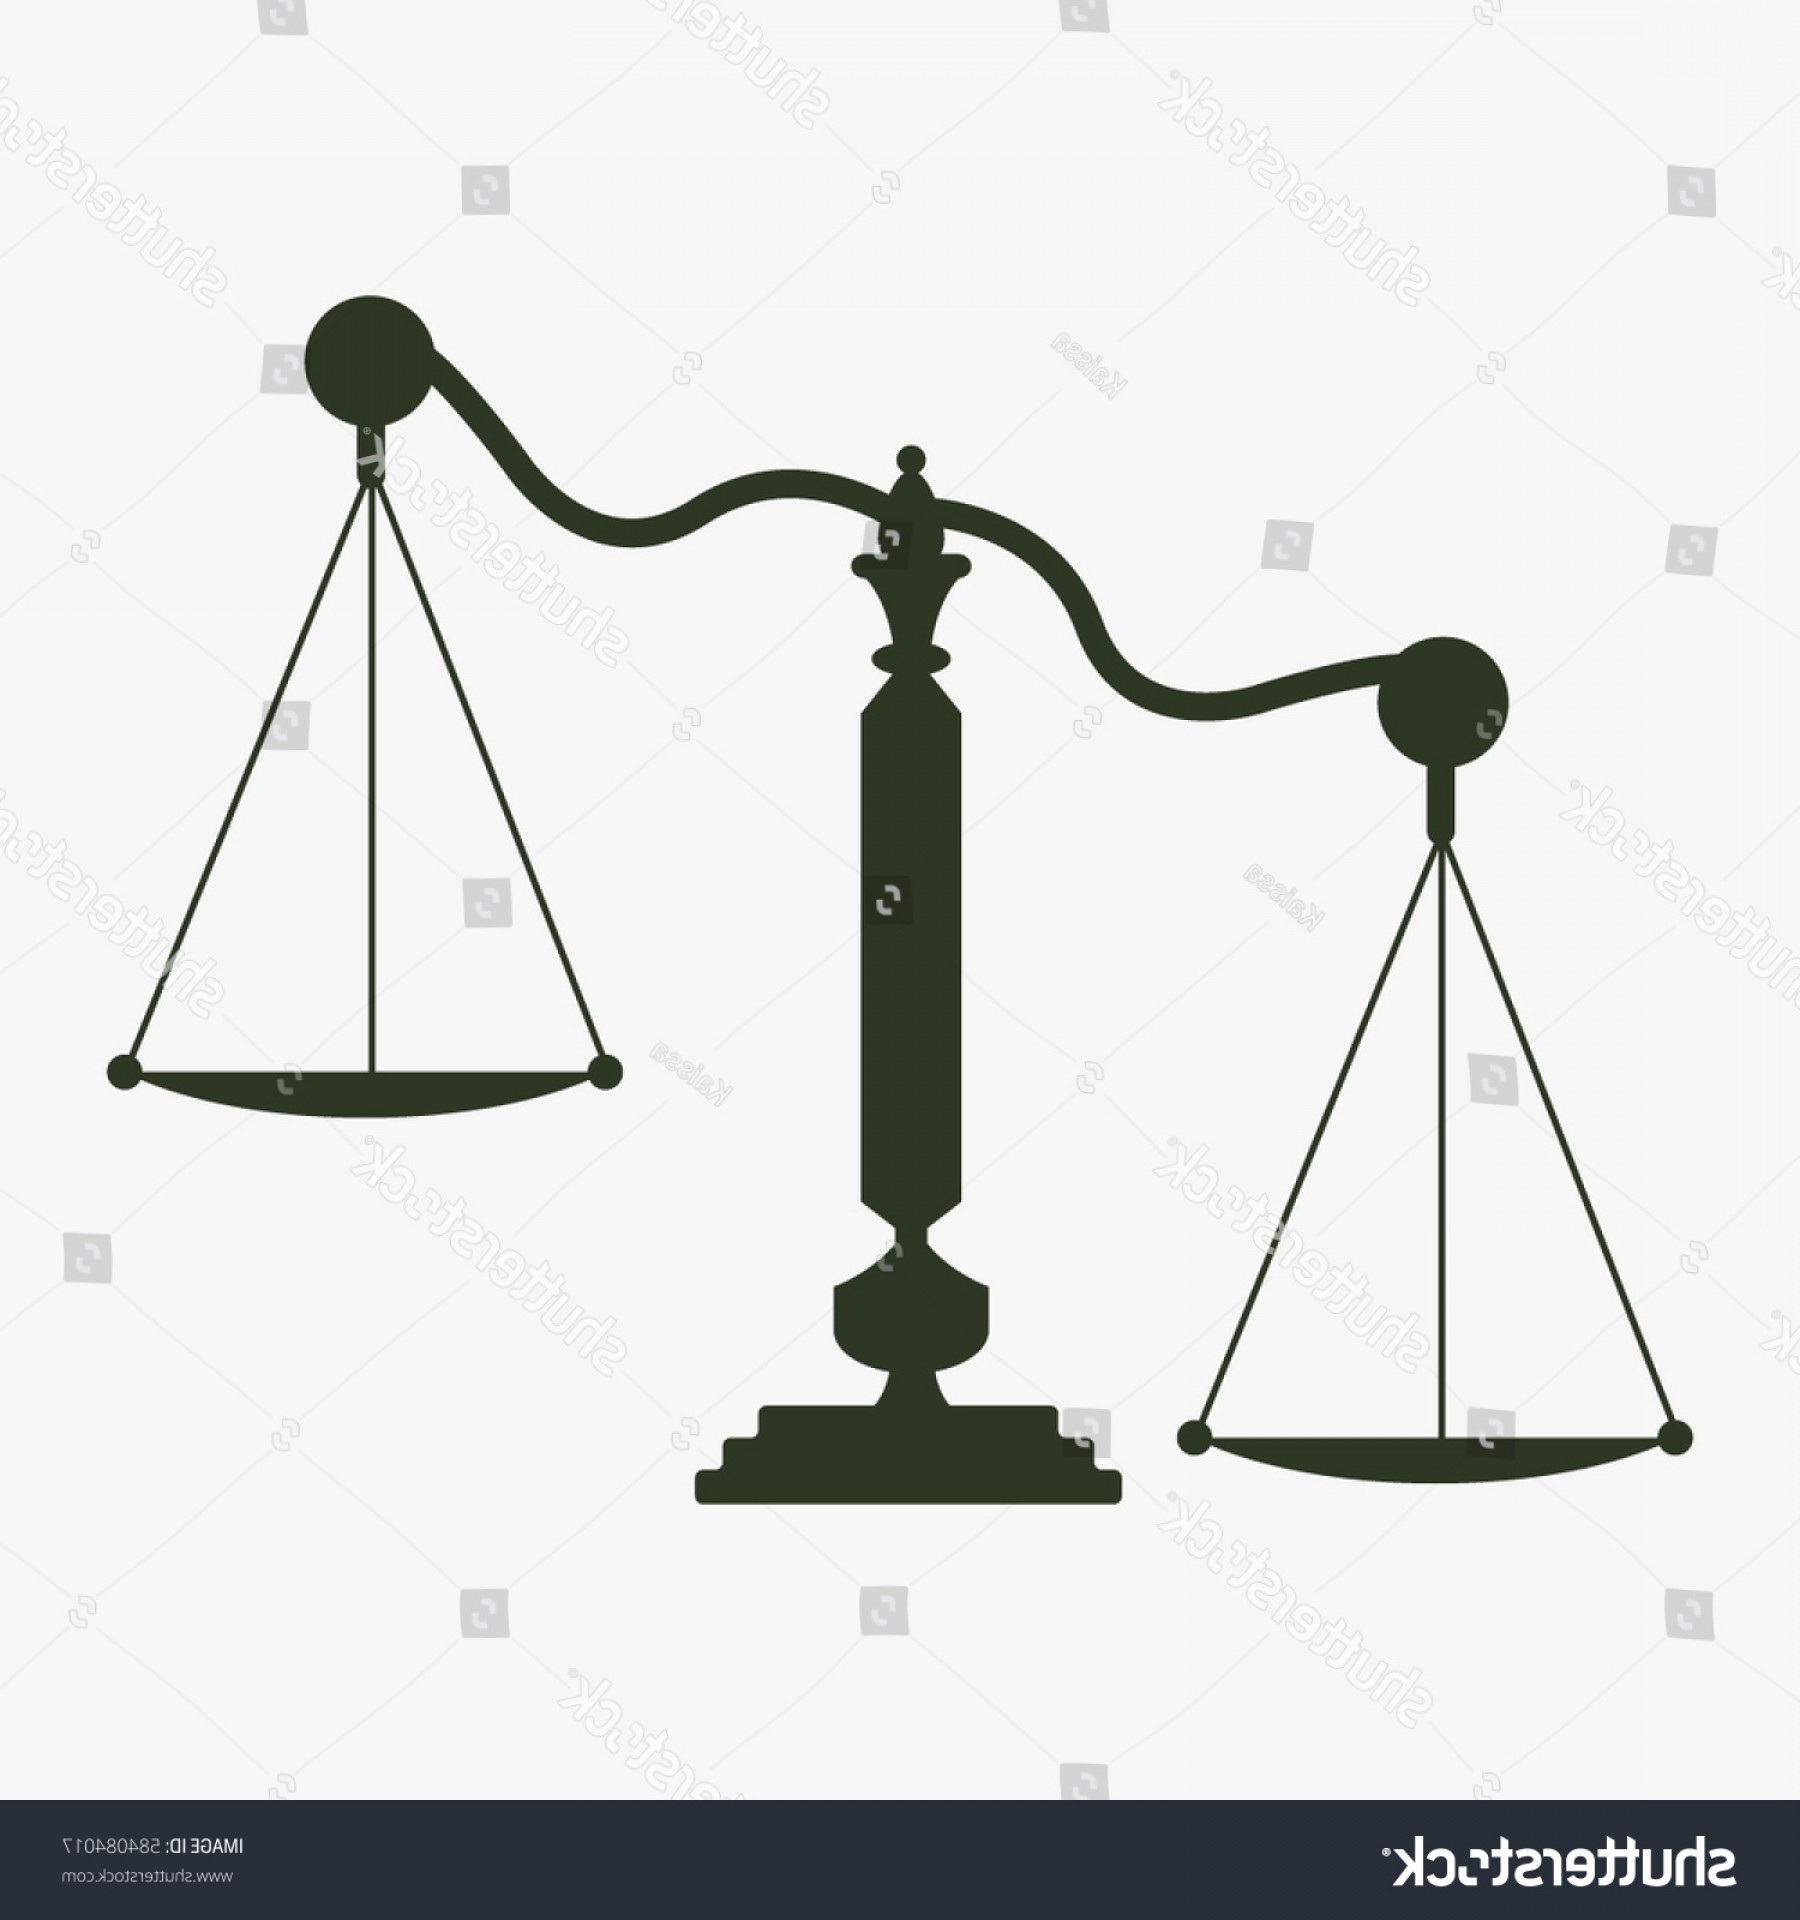 1800x1920 Scales Weighing Weight Balance Vector Icon Shopatcloth